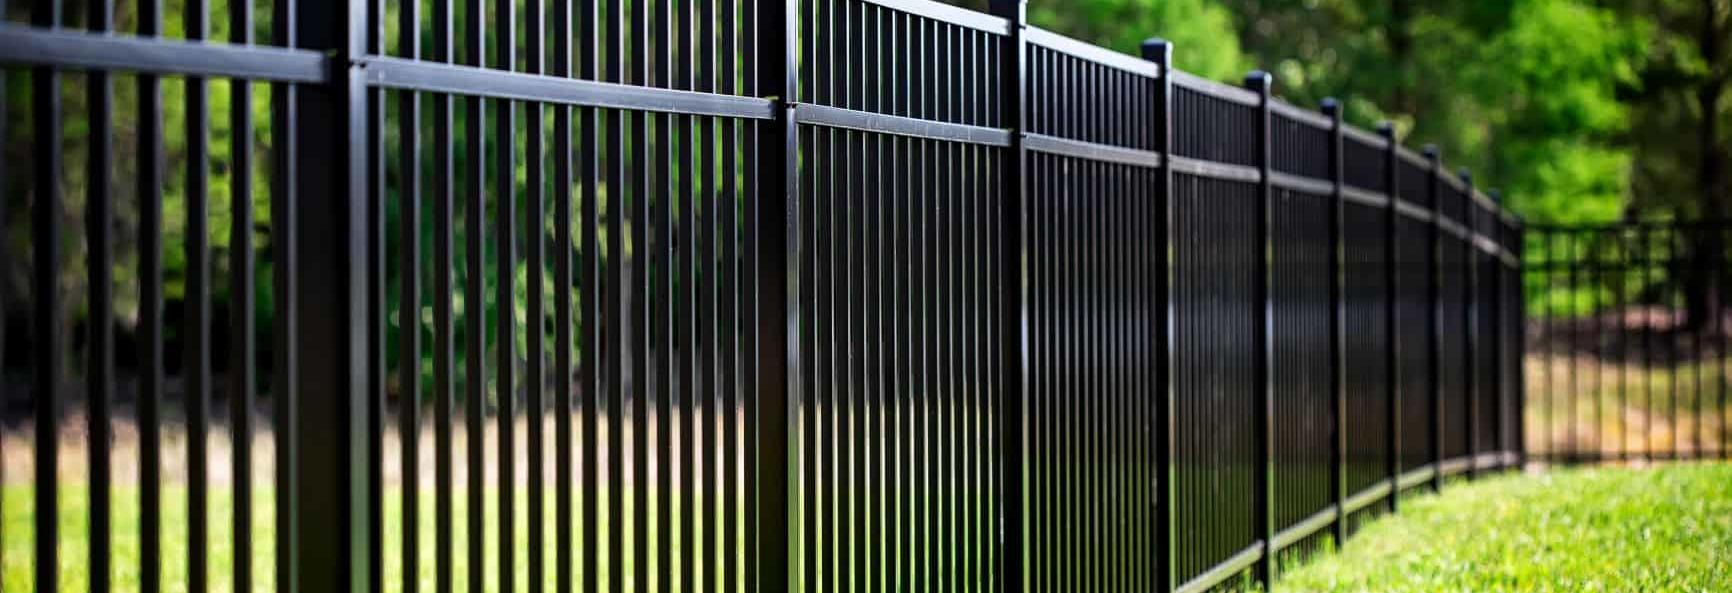 Arden Fence, Deck, & Construction Company banner